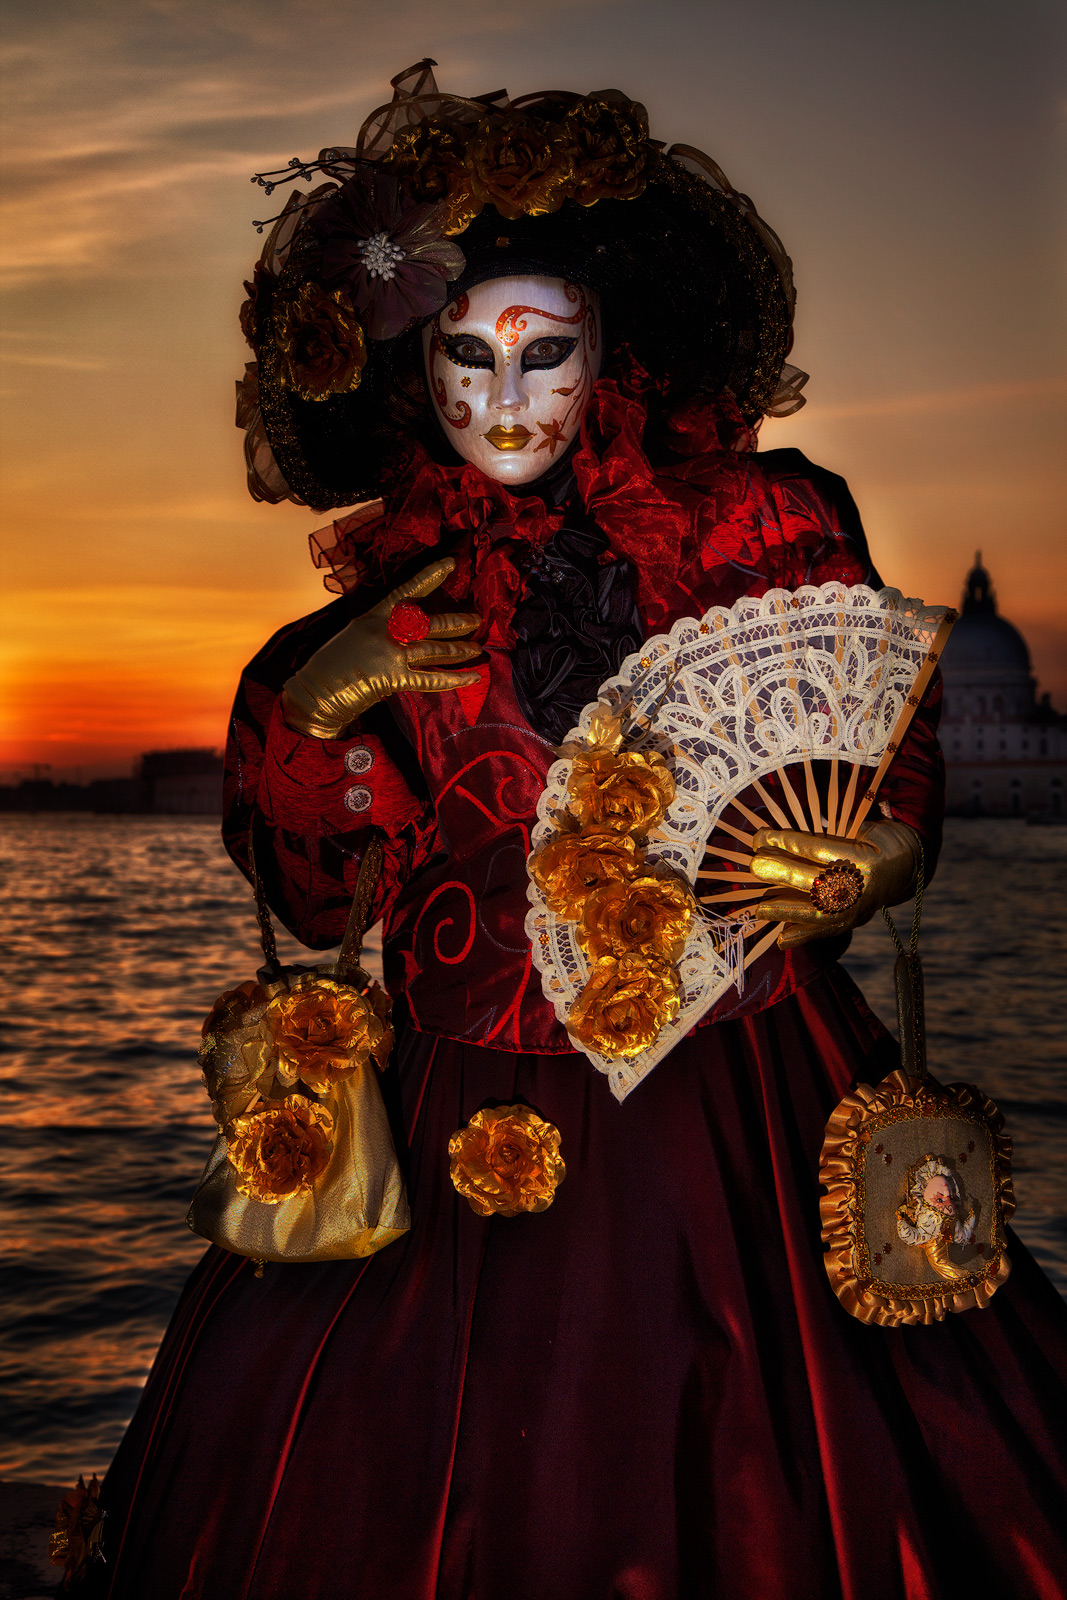 carnival, celebration, colorful, costume, europe, italy, mask, party, san gorgio, sunset, venice, vertical, photo